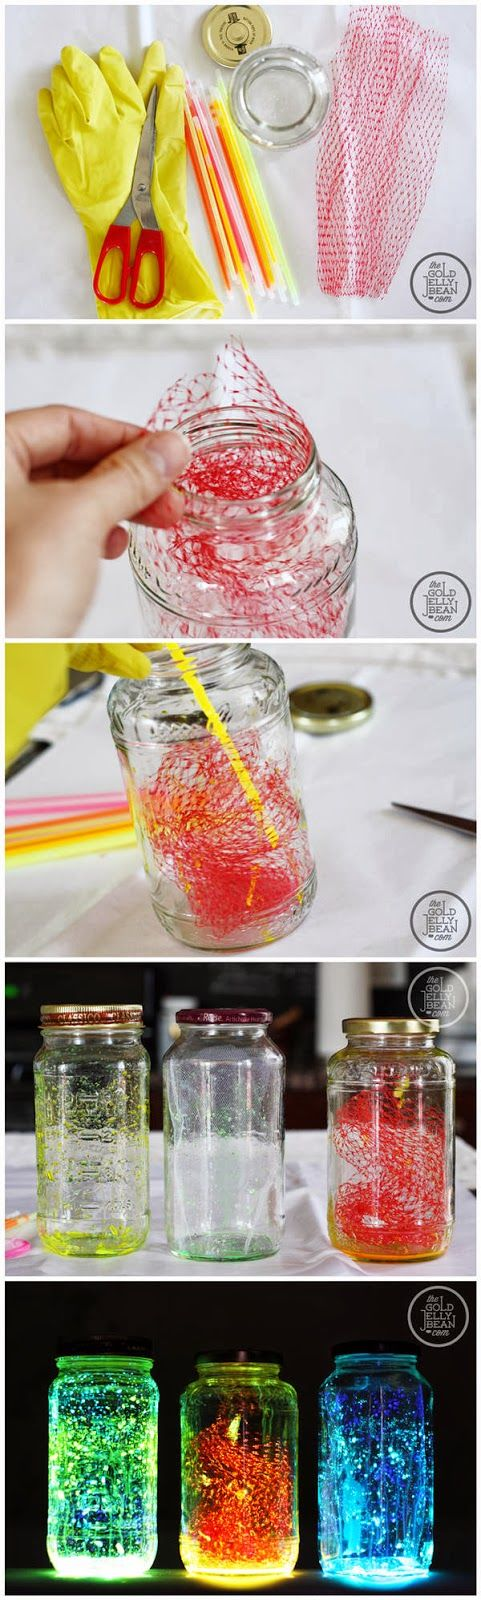 Making Glow Jars Pictures, Photos, and Images for Facebook ...